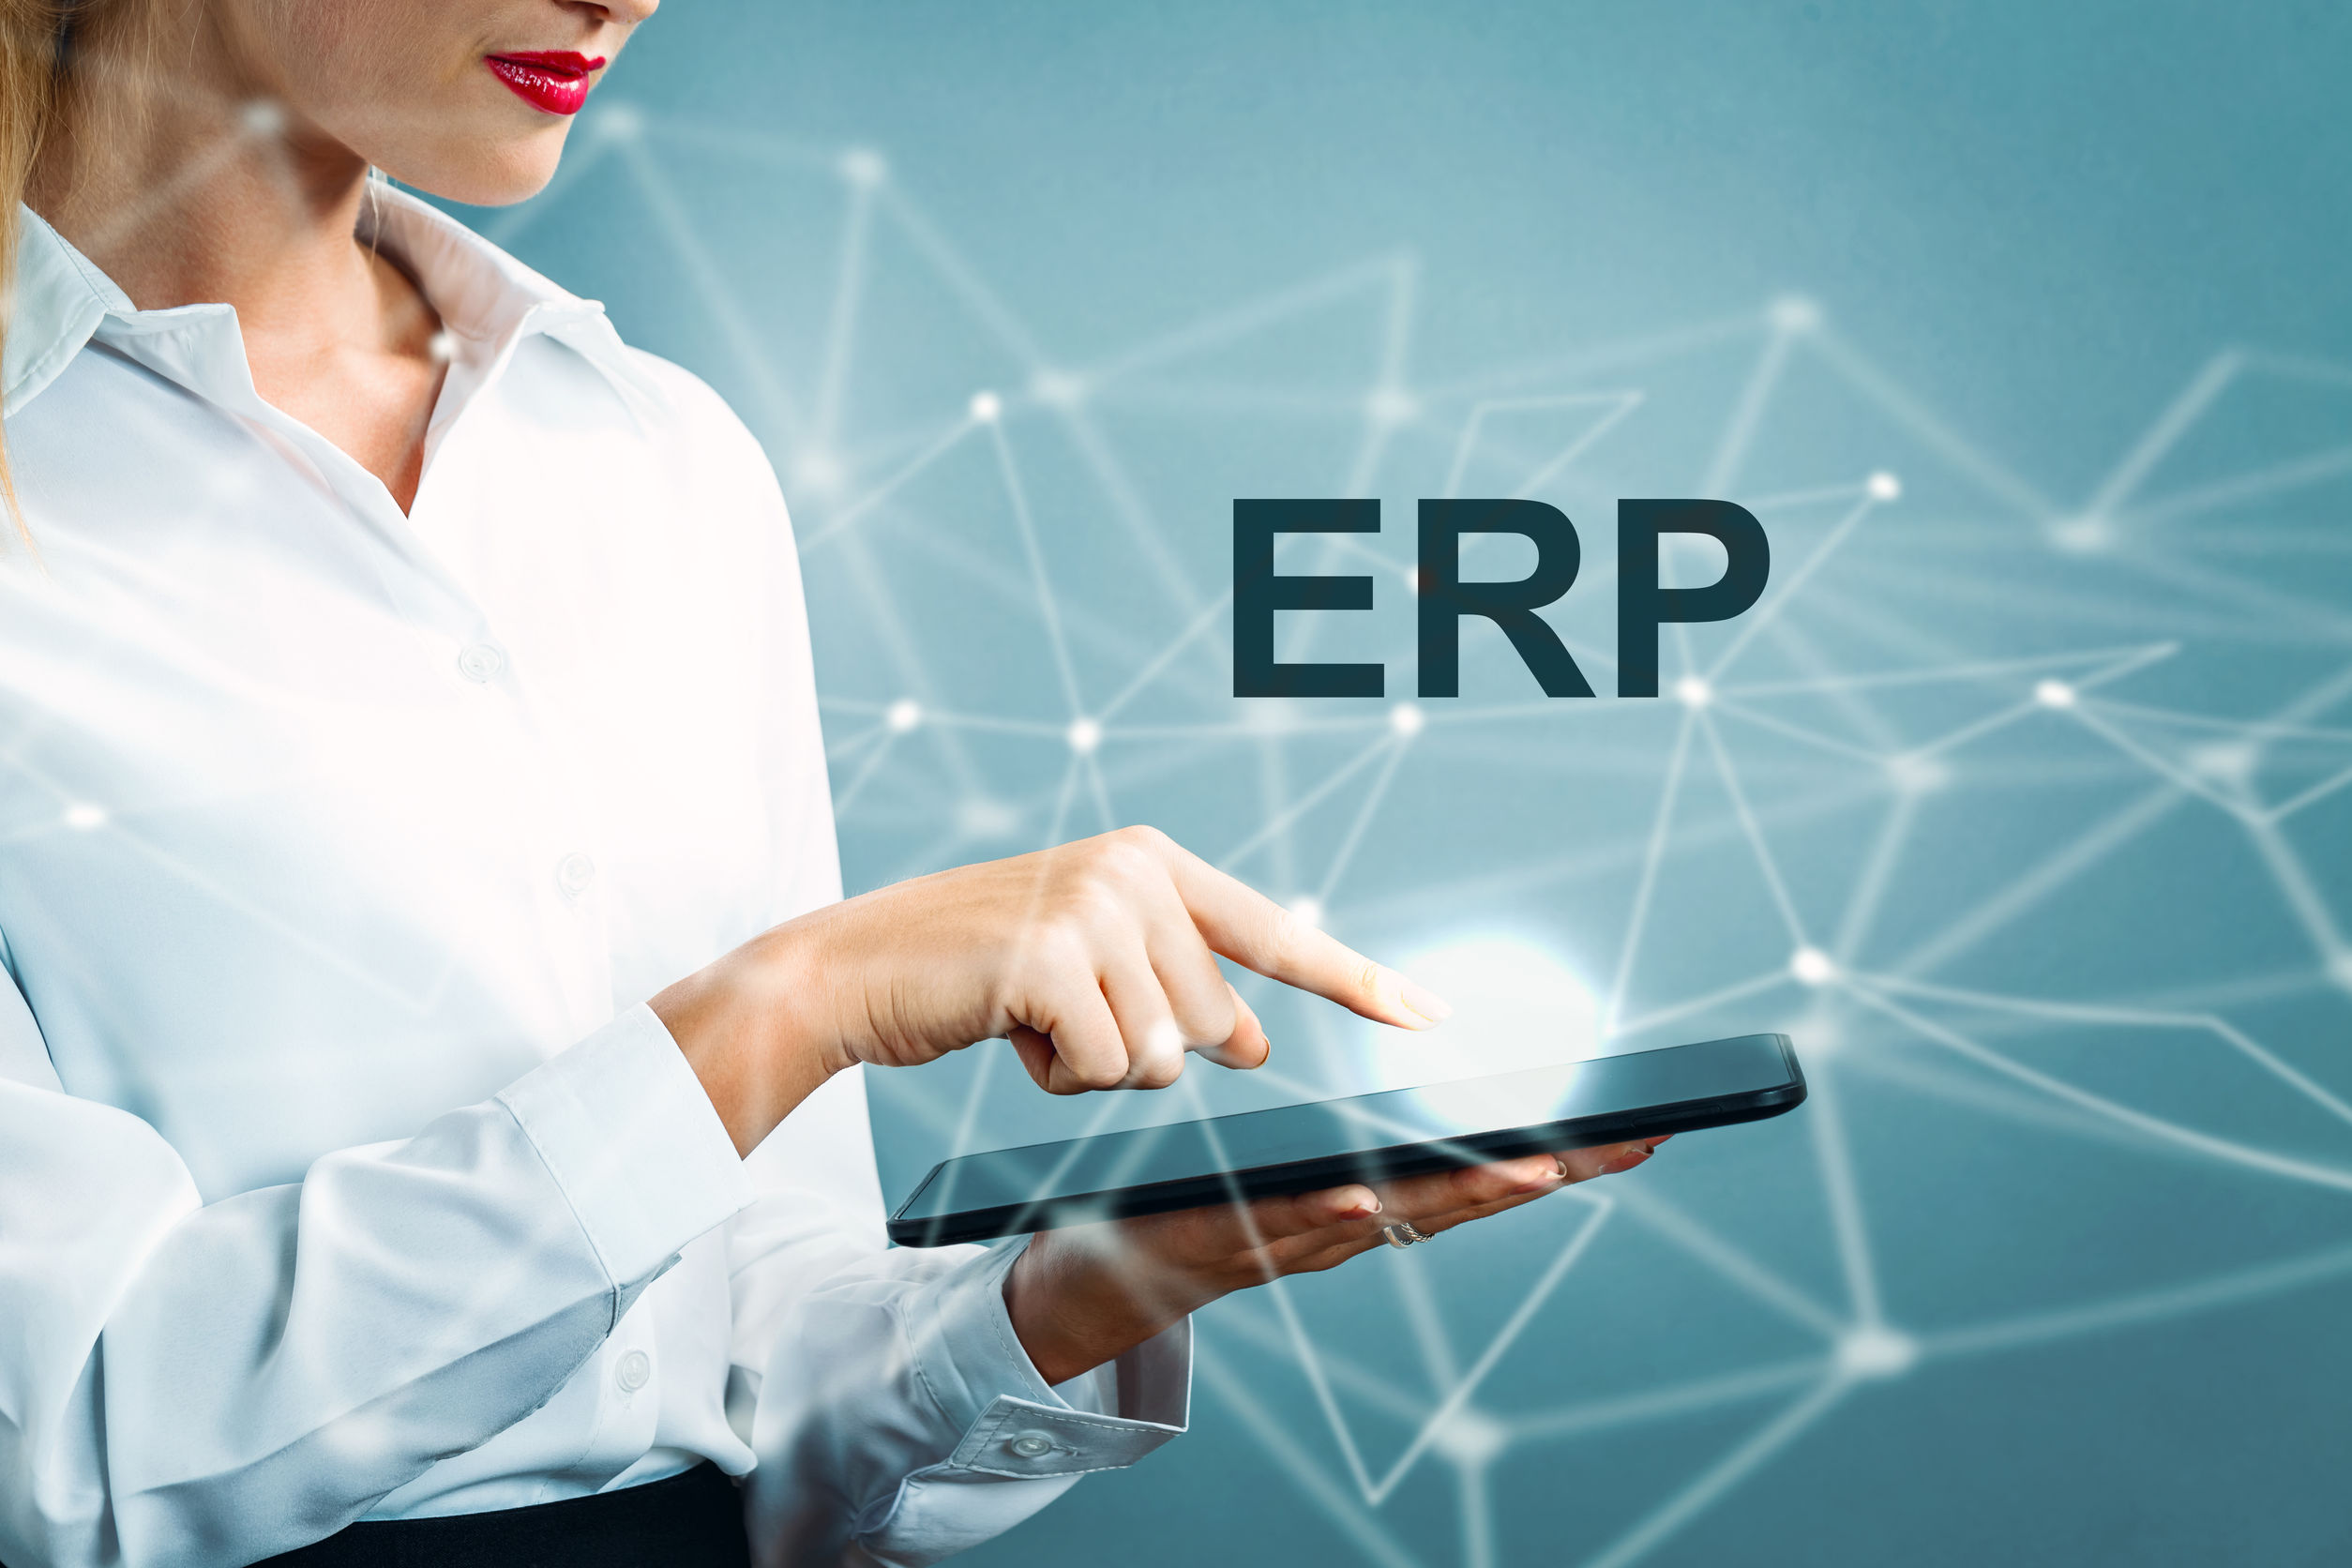 Can ERP Improve Your Company's Operations?